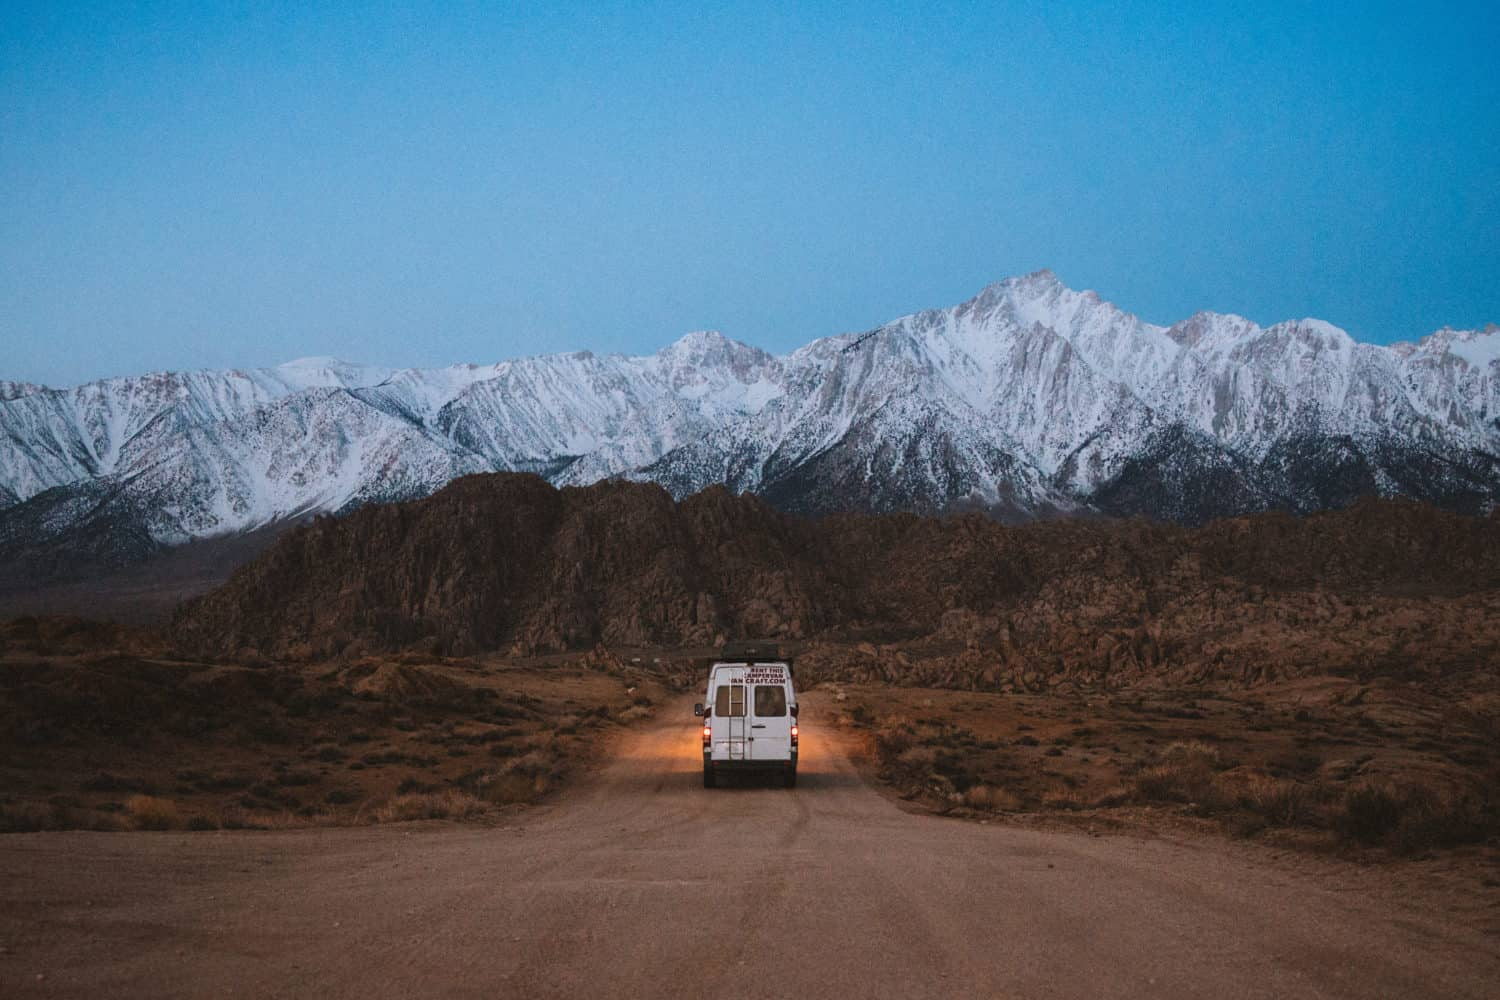 Van driving on Alabama Hills before sunrise